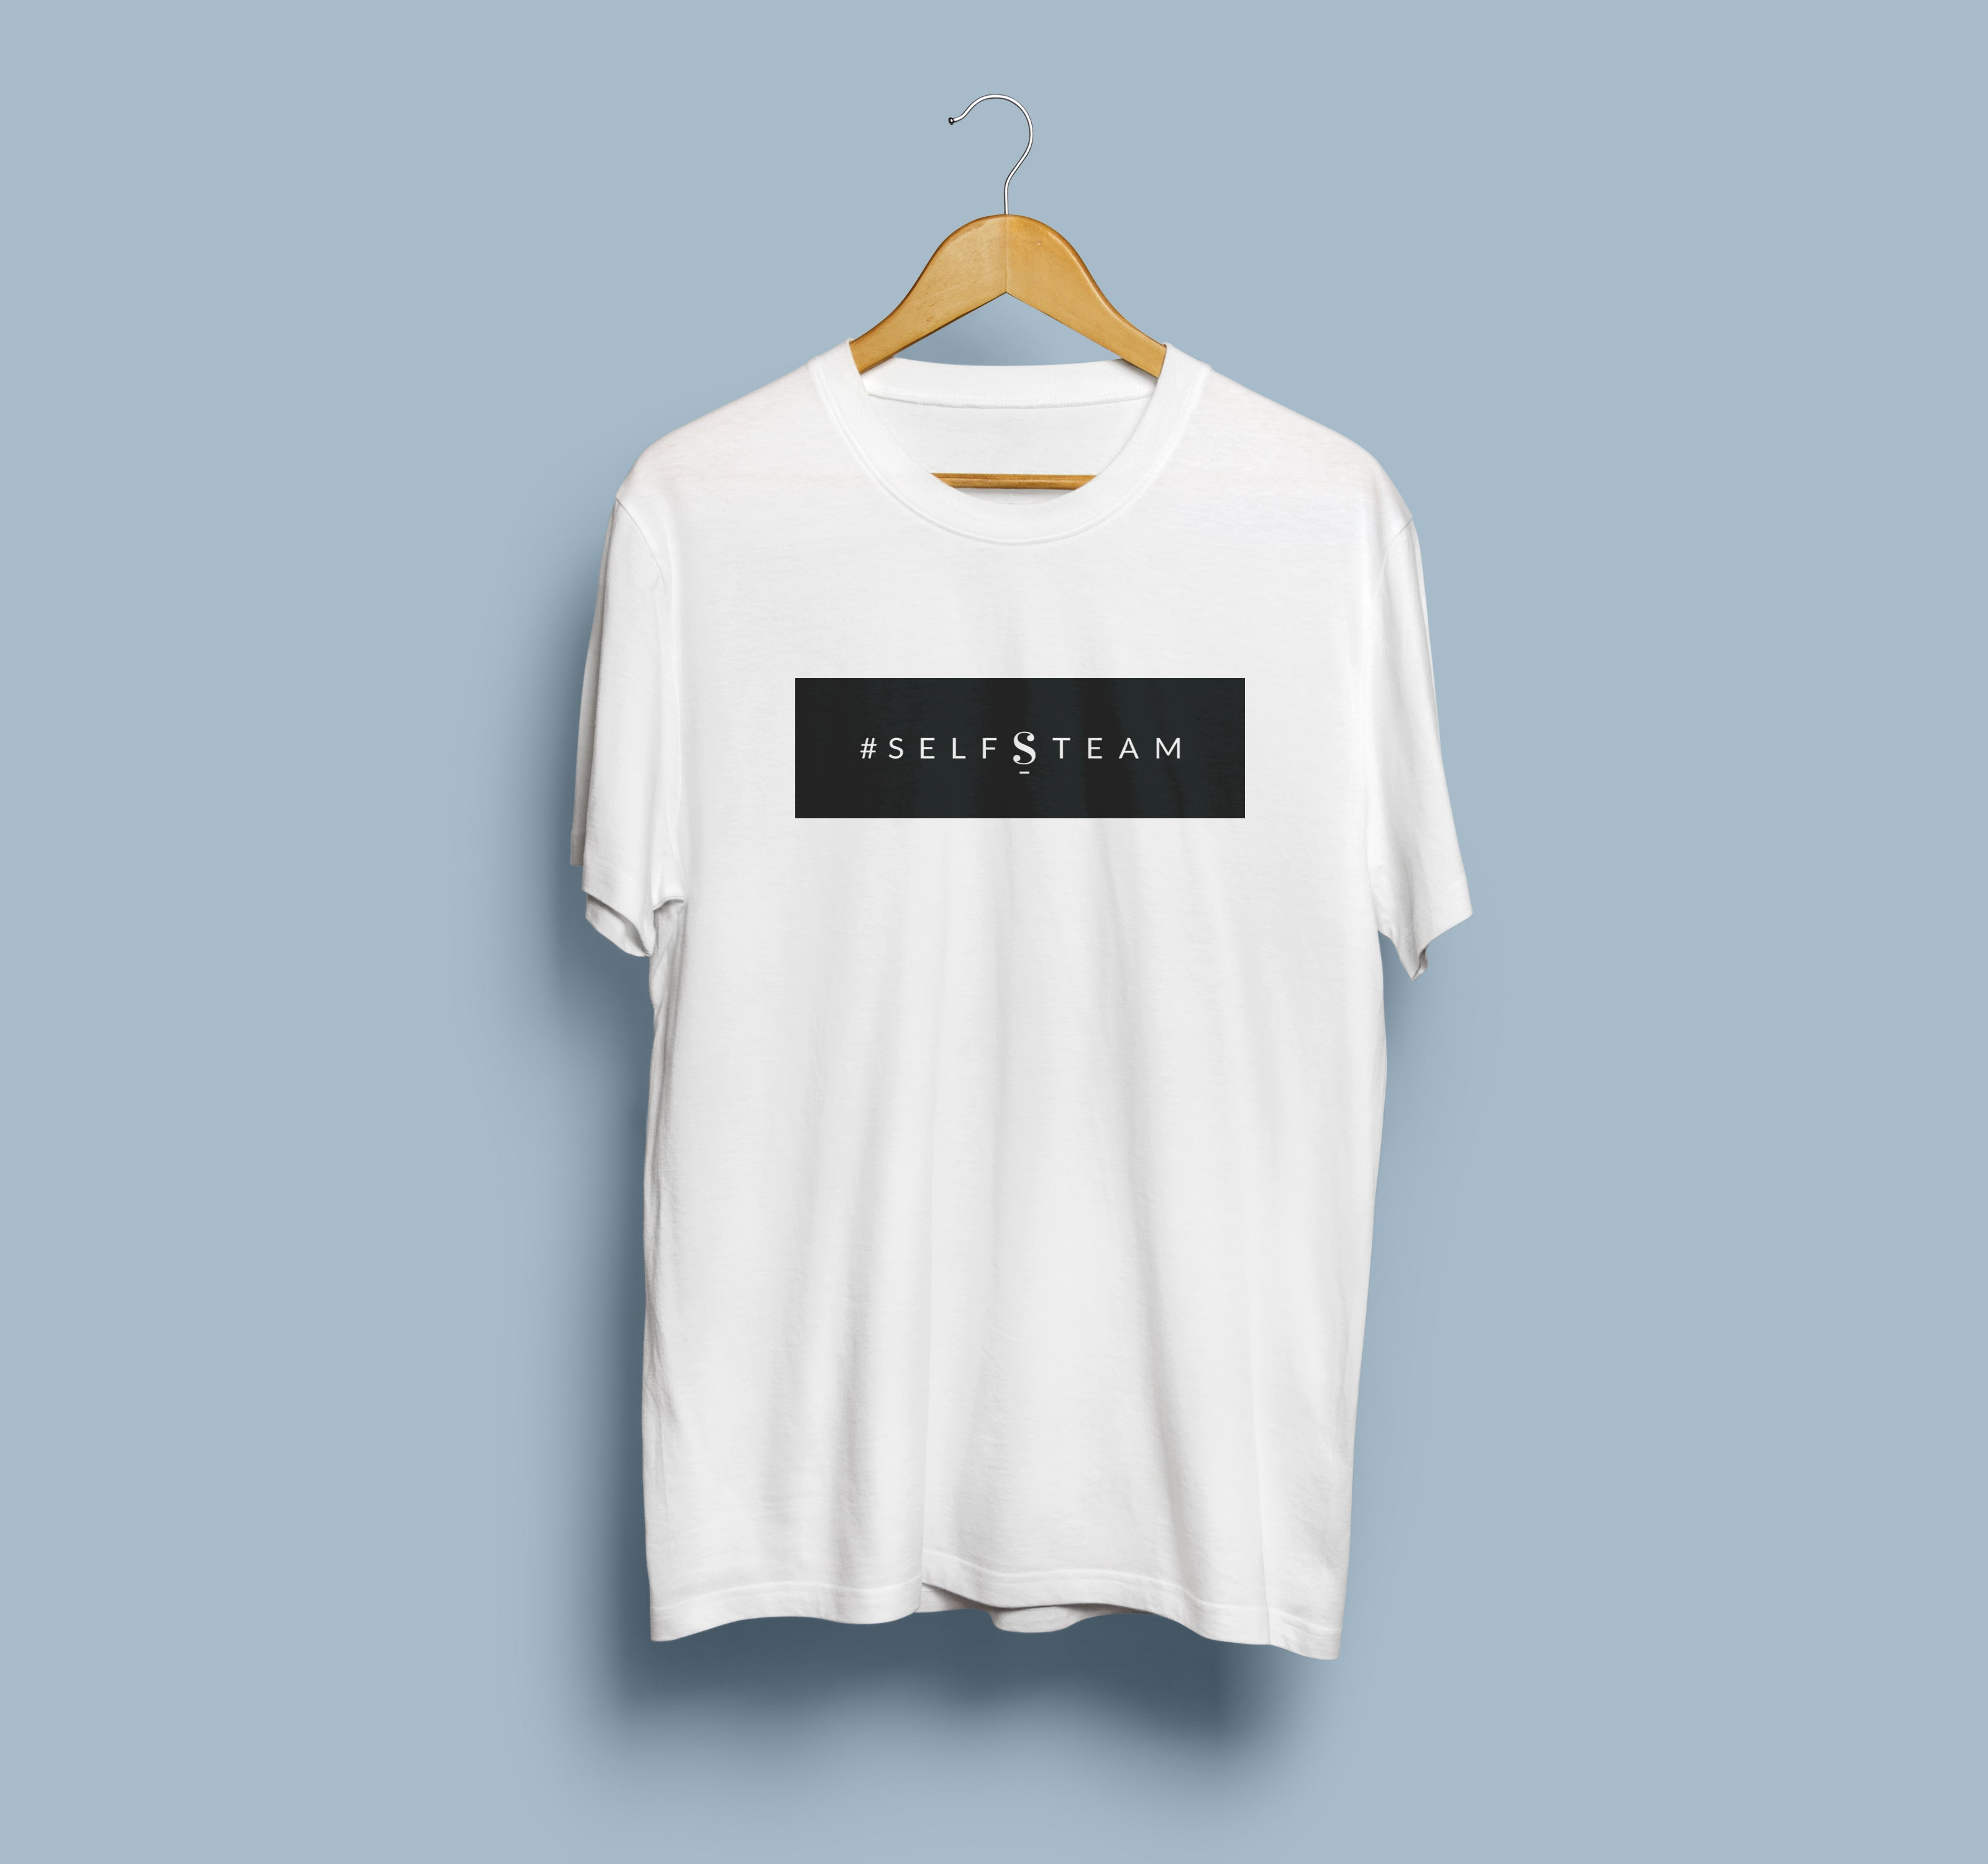 Self S Team T-Shirt